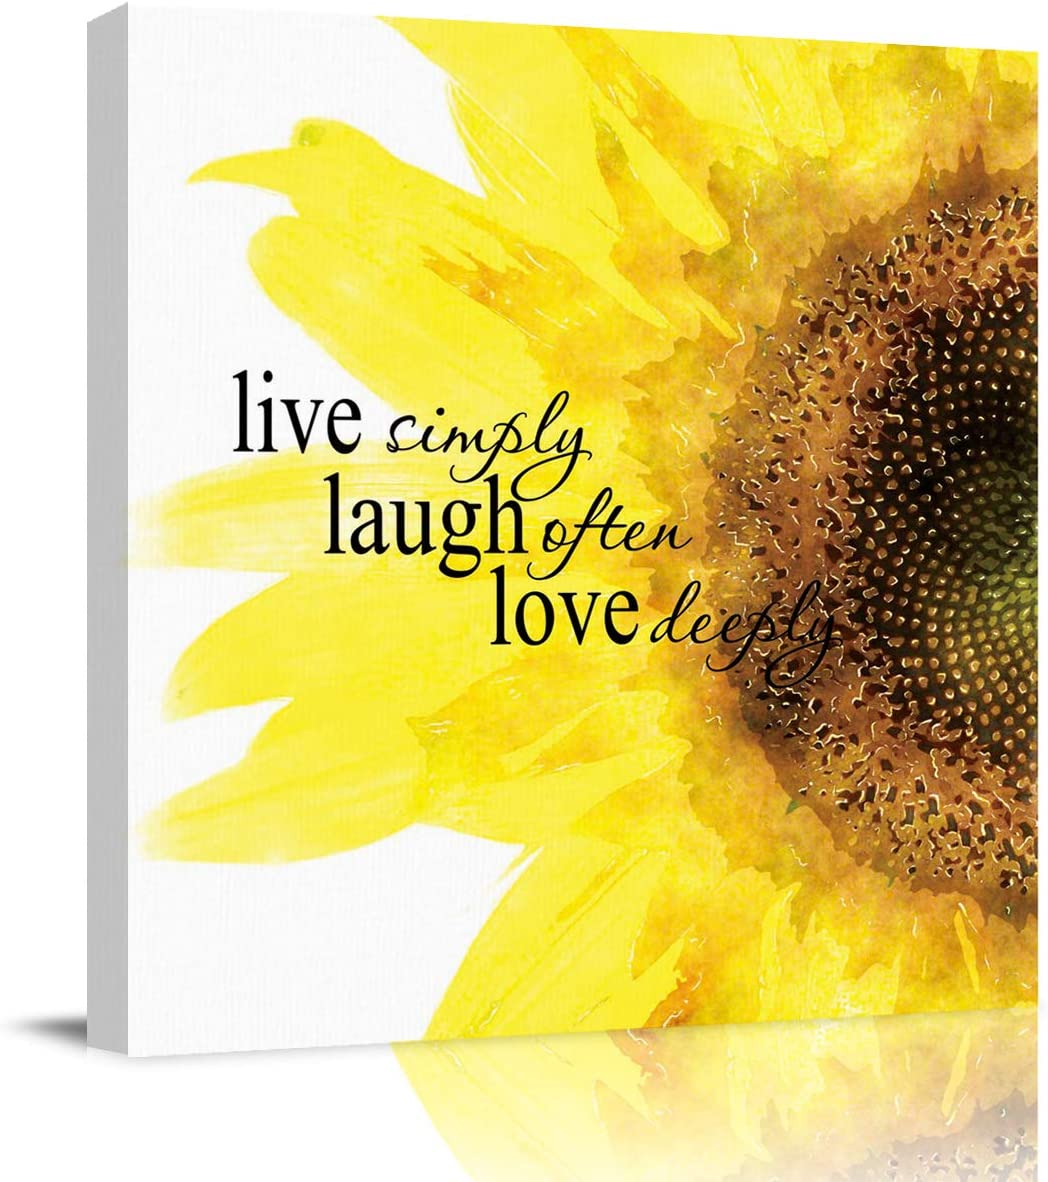 Wall Art Canvas Paintings Quote Live Simply Laugh Often Love Deeply with Sunflower Wall Decor Framed Canvas Prints Ready to Hang for Living Room Office Kitchen Artwork Decor 12x12 inch